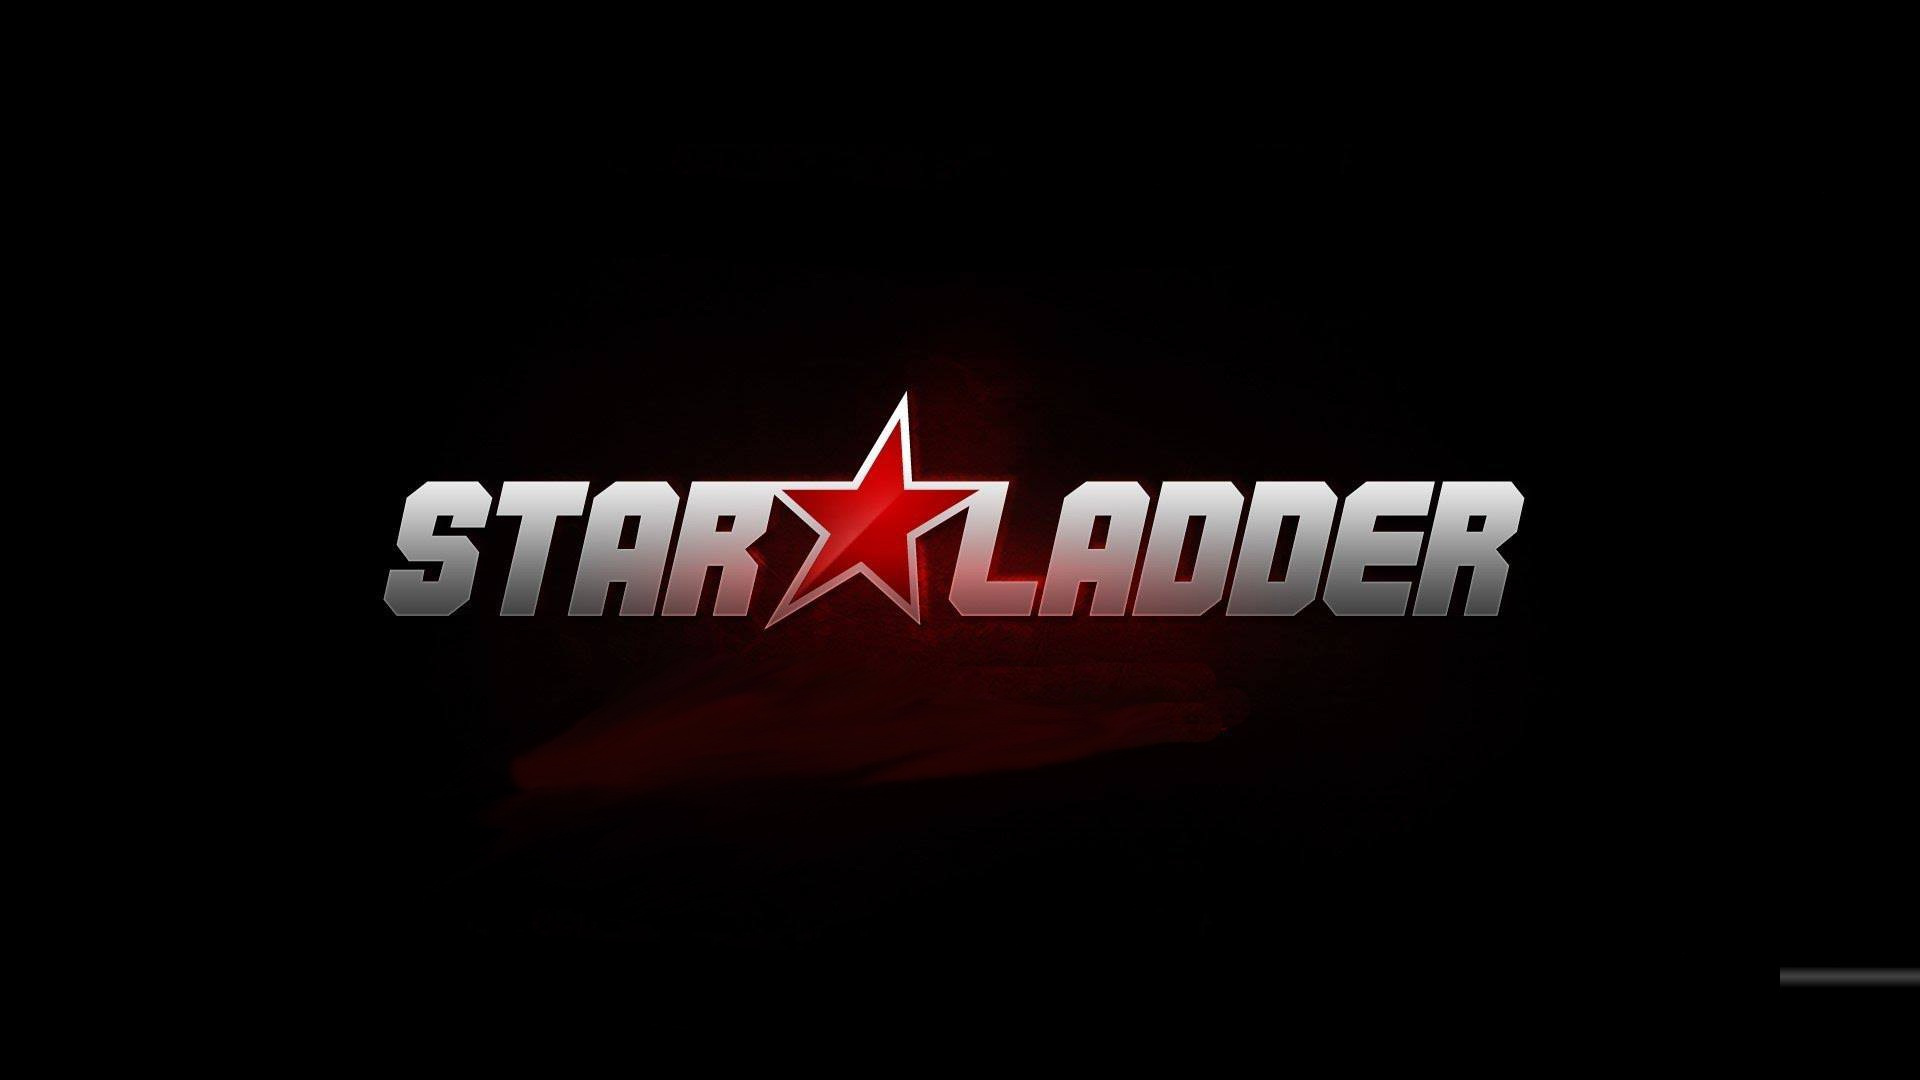 Starladder have revealed the names of the teams invited to SL I-League Season 3.